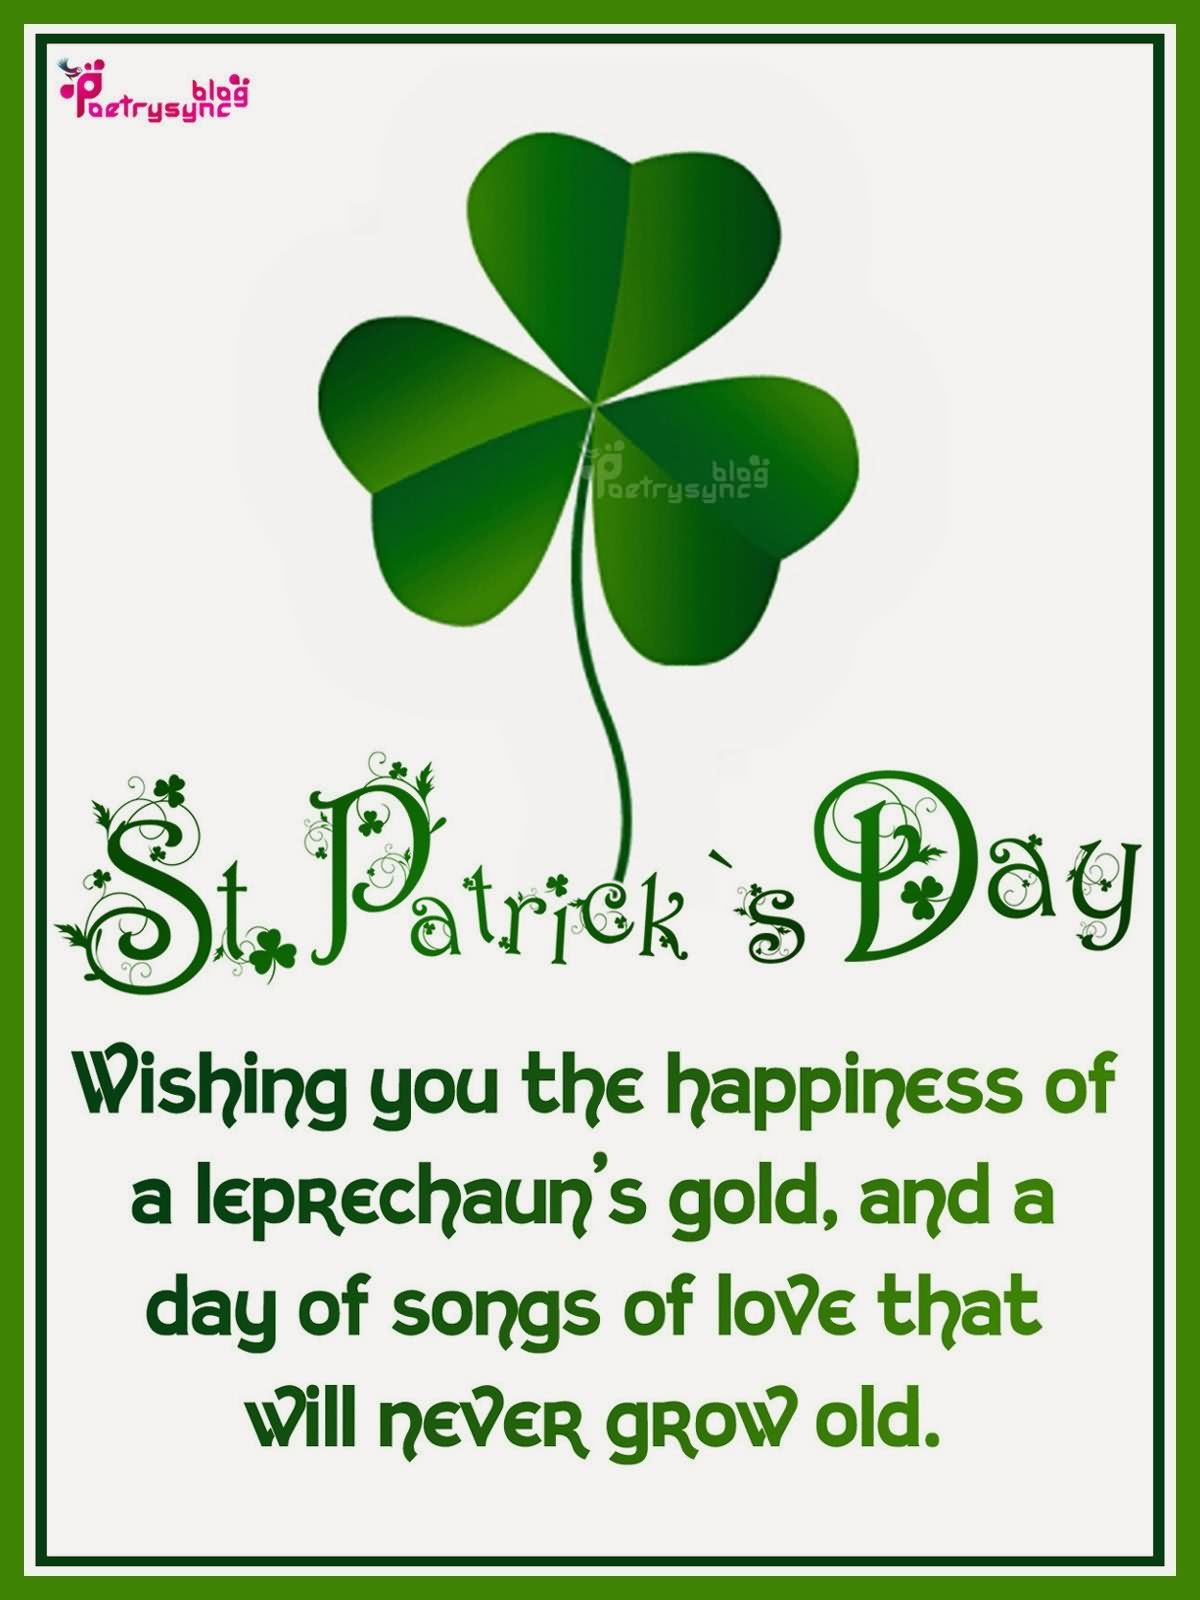 St Patricks Day Wishing You The Happiness Of A Leprechauns Gold Pictures Photos And Images